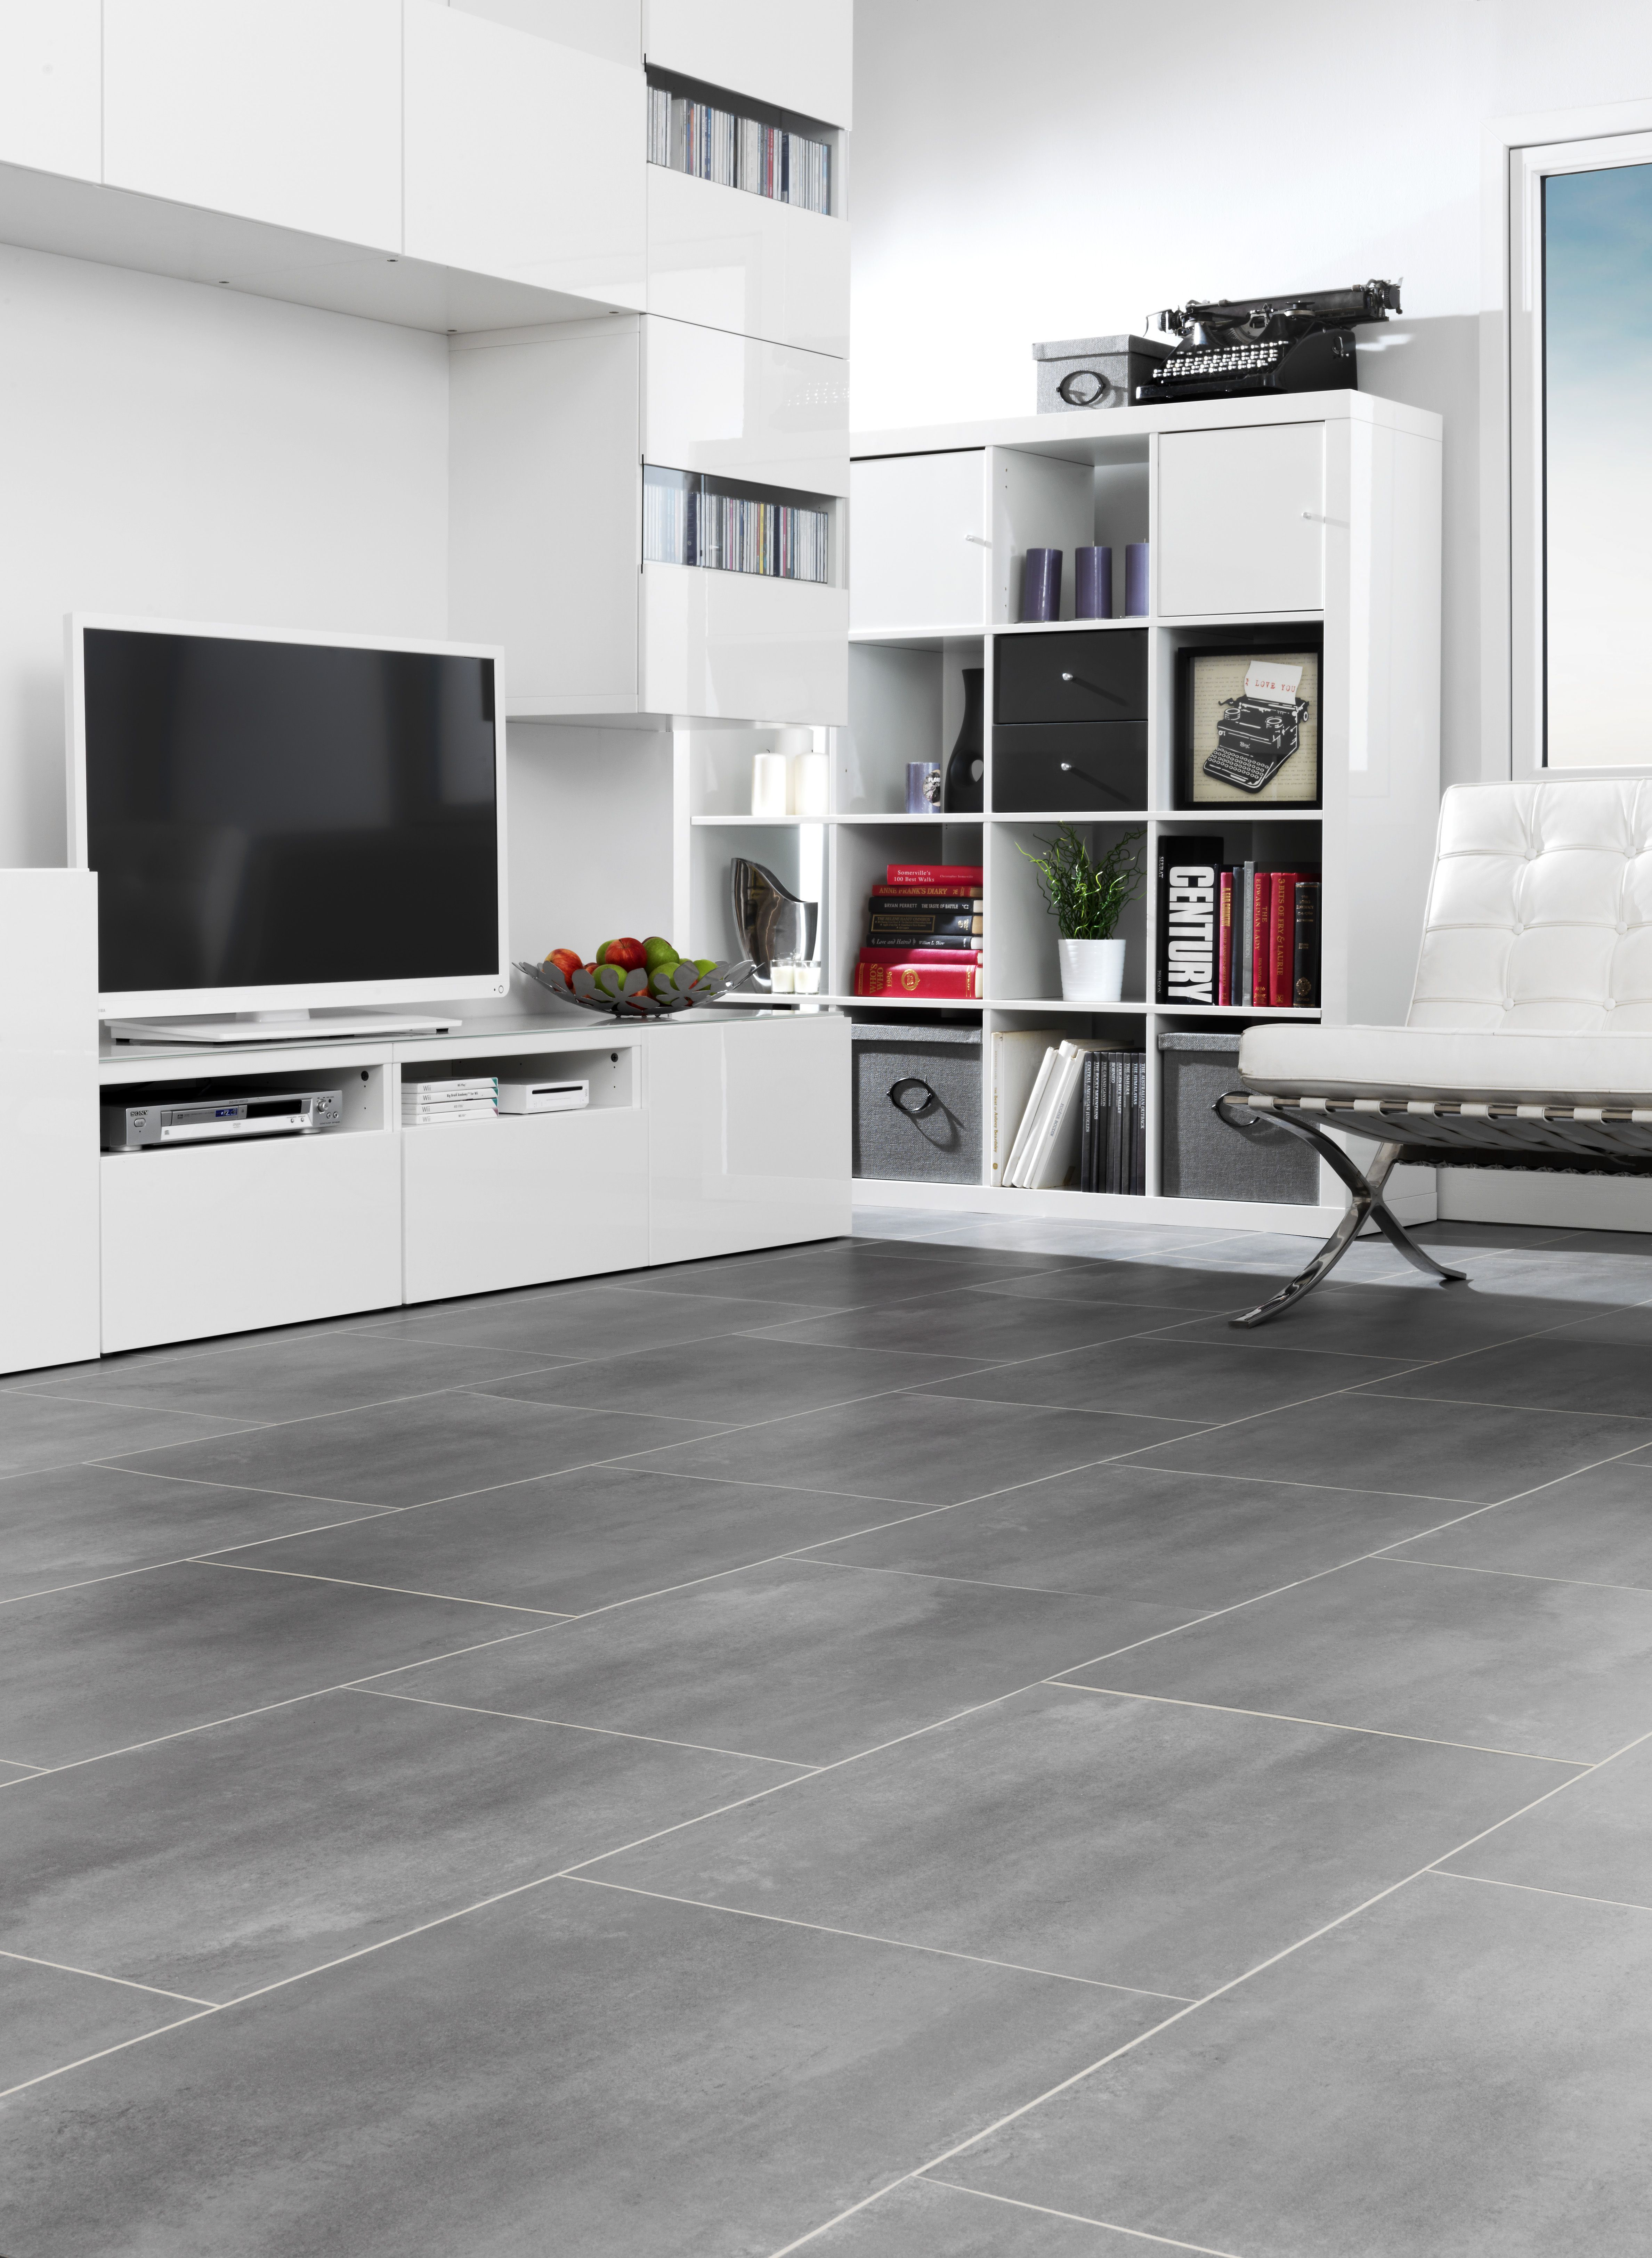 The large rectangular tiles of urbus from the opus stone the large rectangular tiles of urbus from the opus stone collection bring a stormy dailygadgetfo Image collections